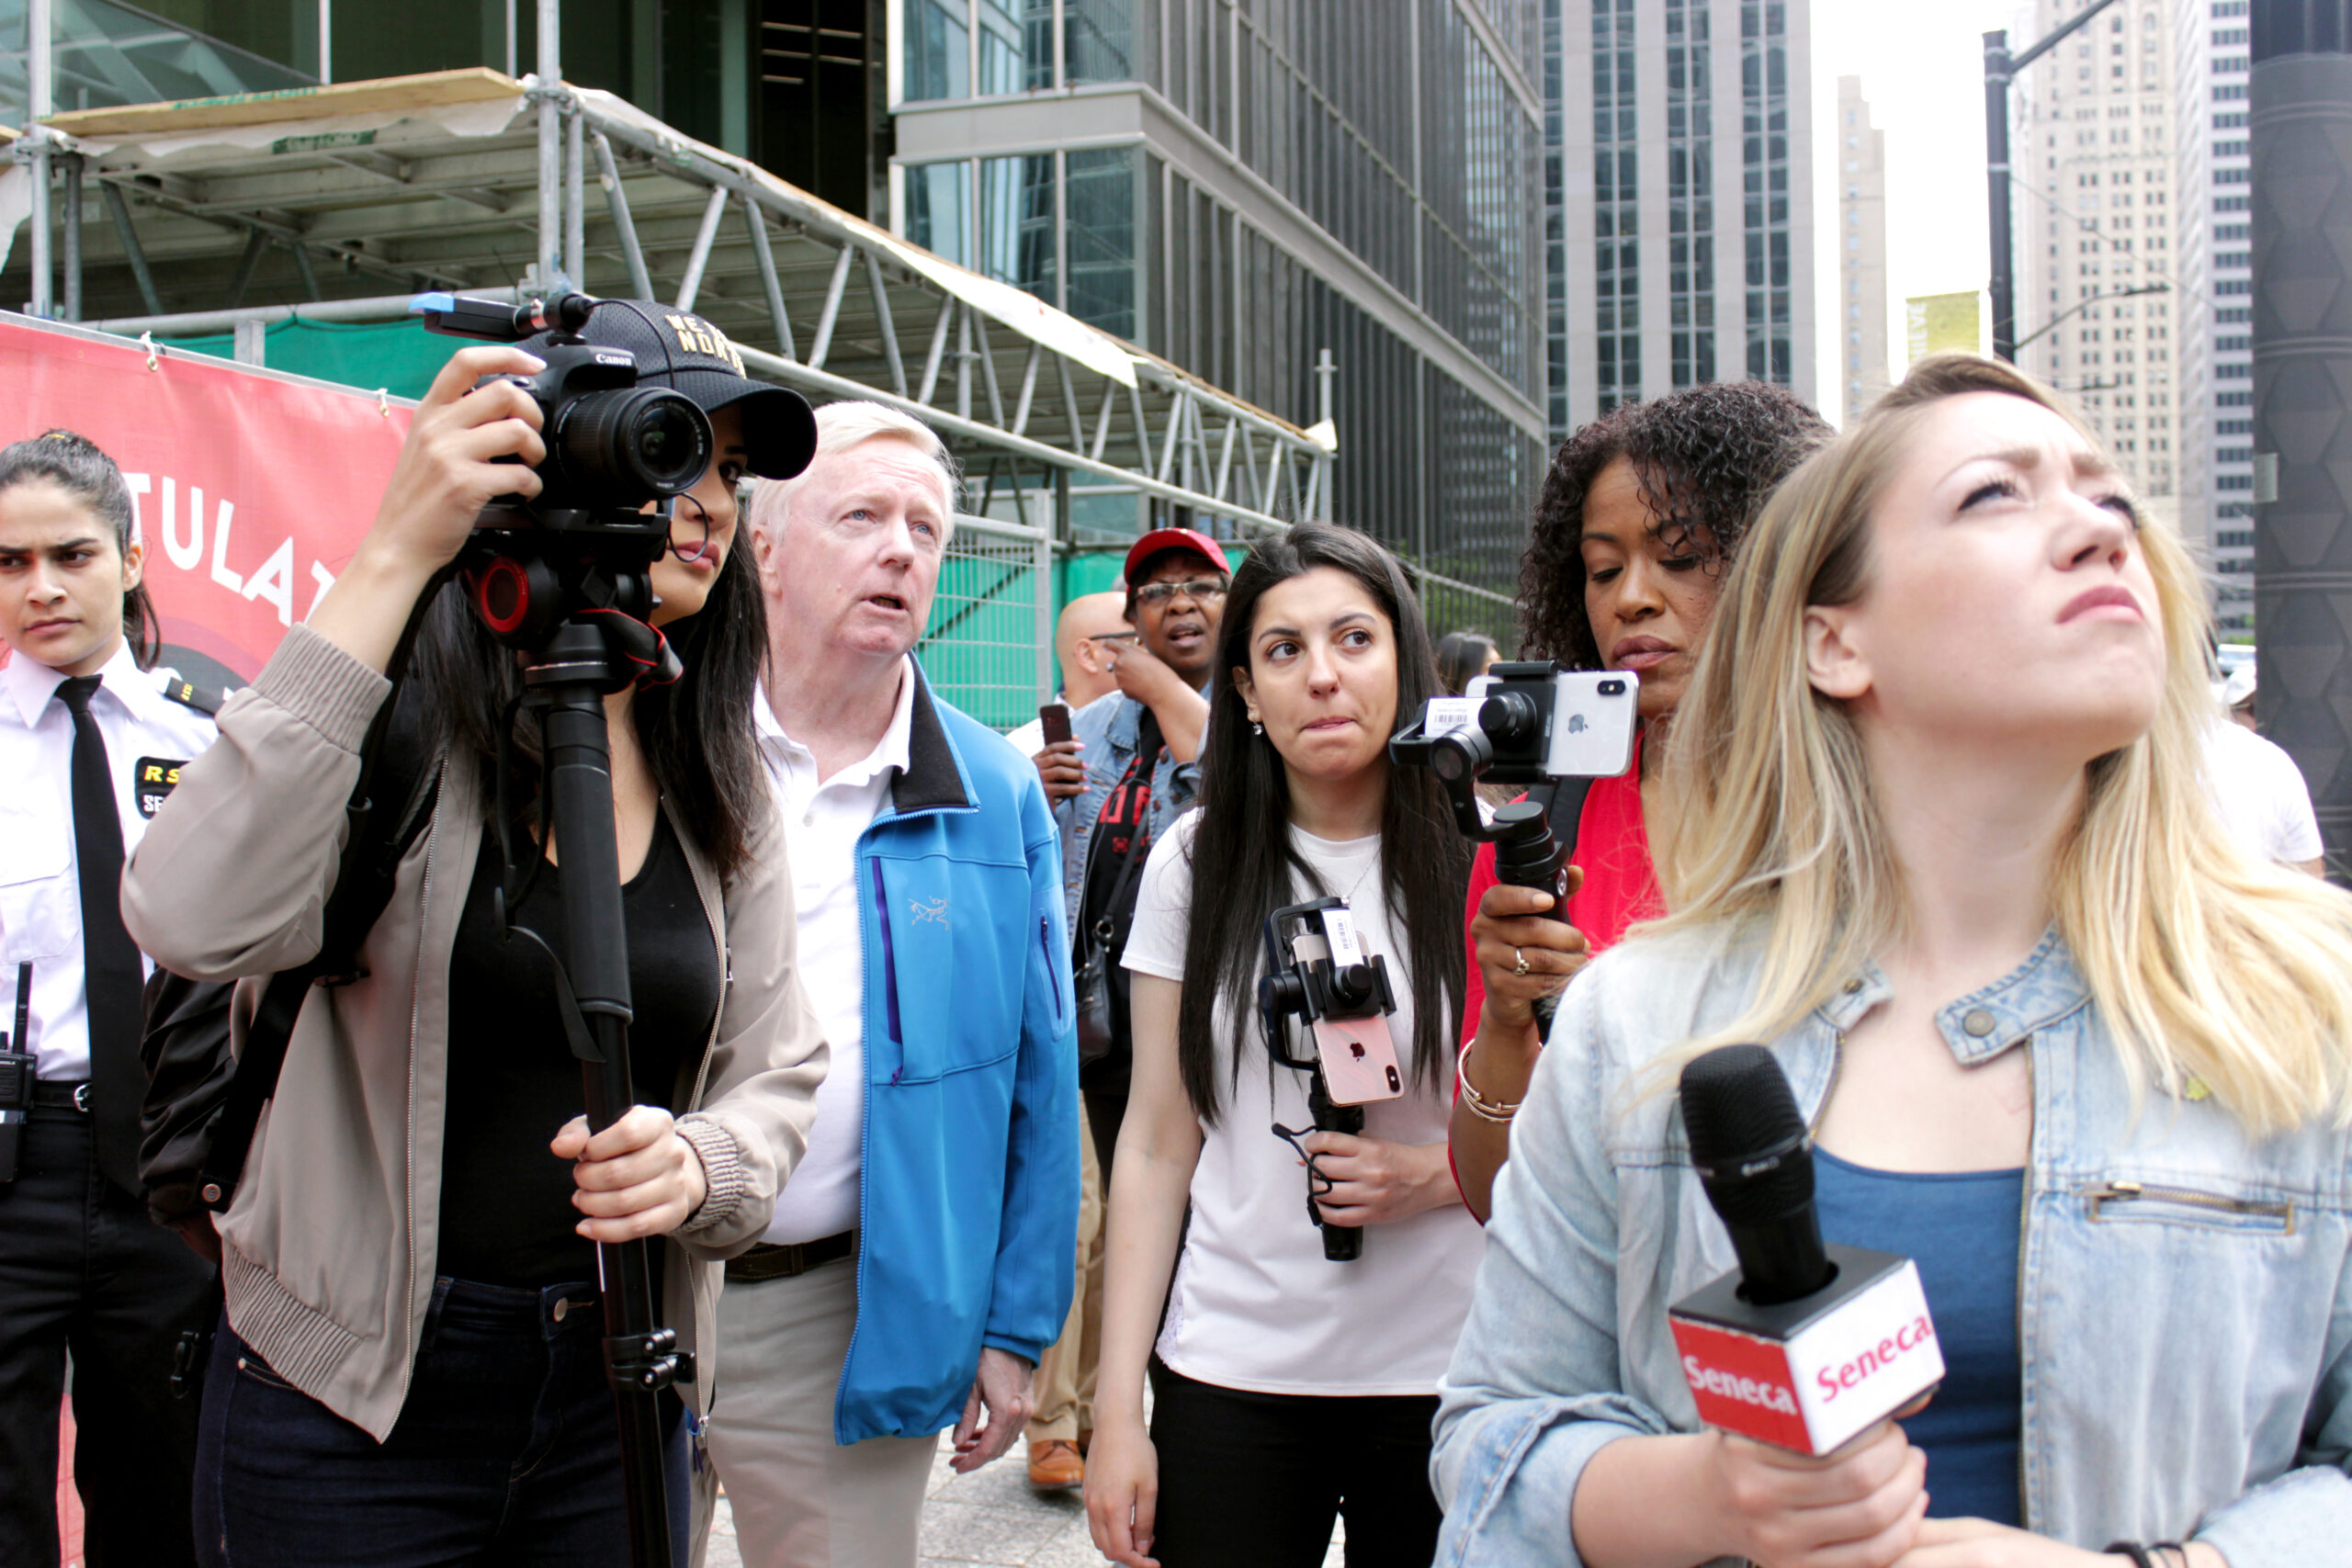 Journalism students cover raptors parade